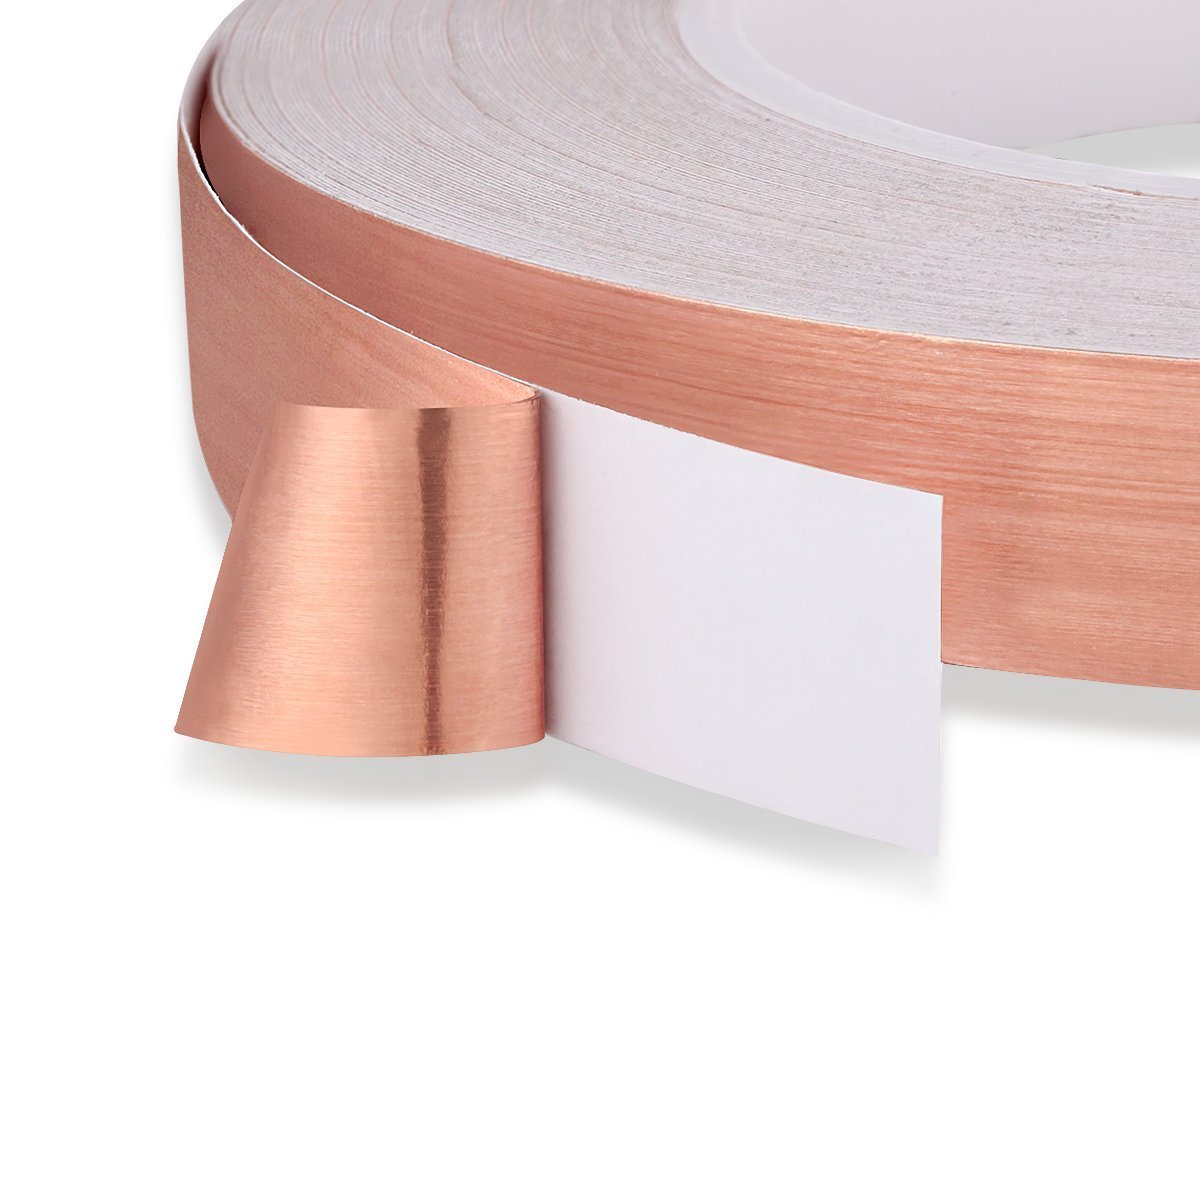 Other Soldering Slug Repellent Paper Circuits Grounding Wolfride Pack of 3 Double-Sided Conductive EMI Shielding Copper Foil Tape for Stained Glass Electrical Repairs 27.5 Yard//Each